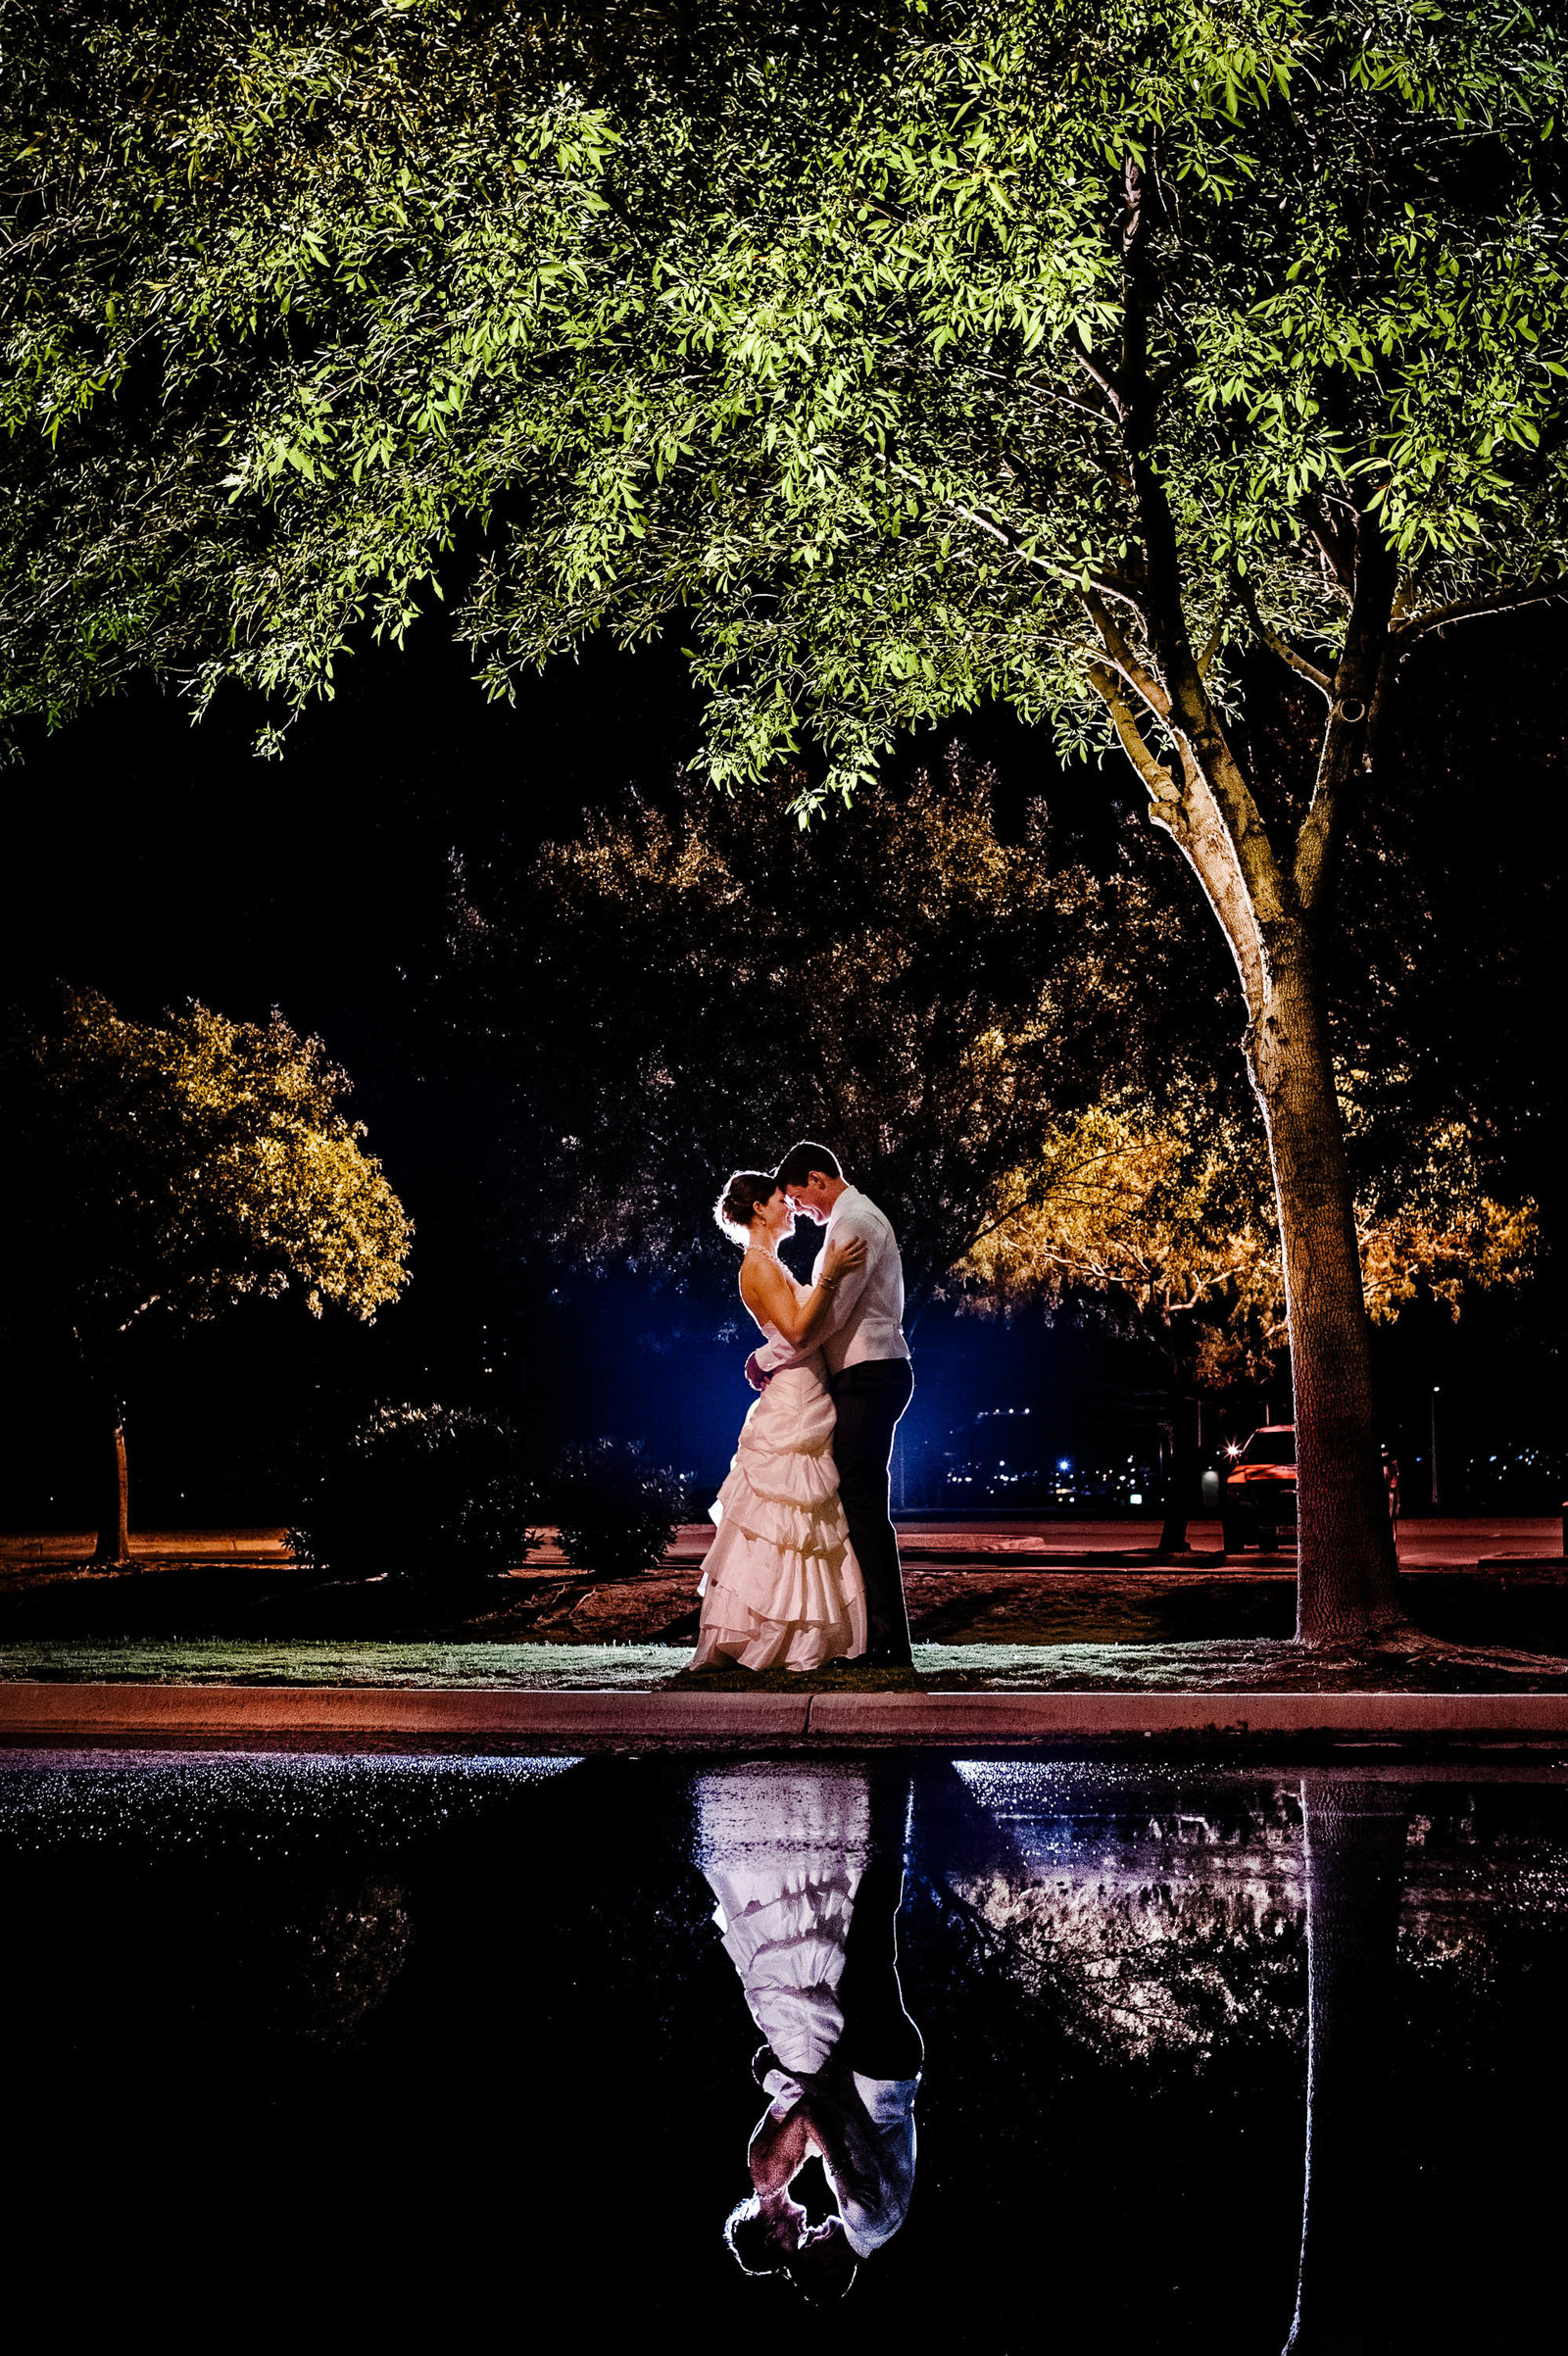 240-El-paso-wedding-photographer-097LaJu_0097